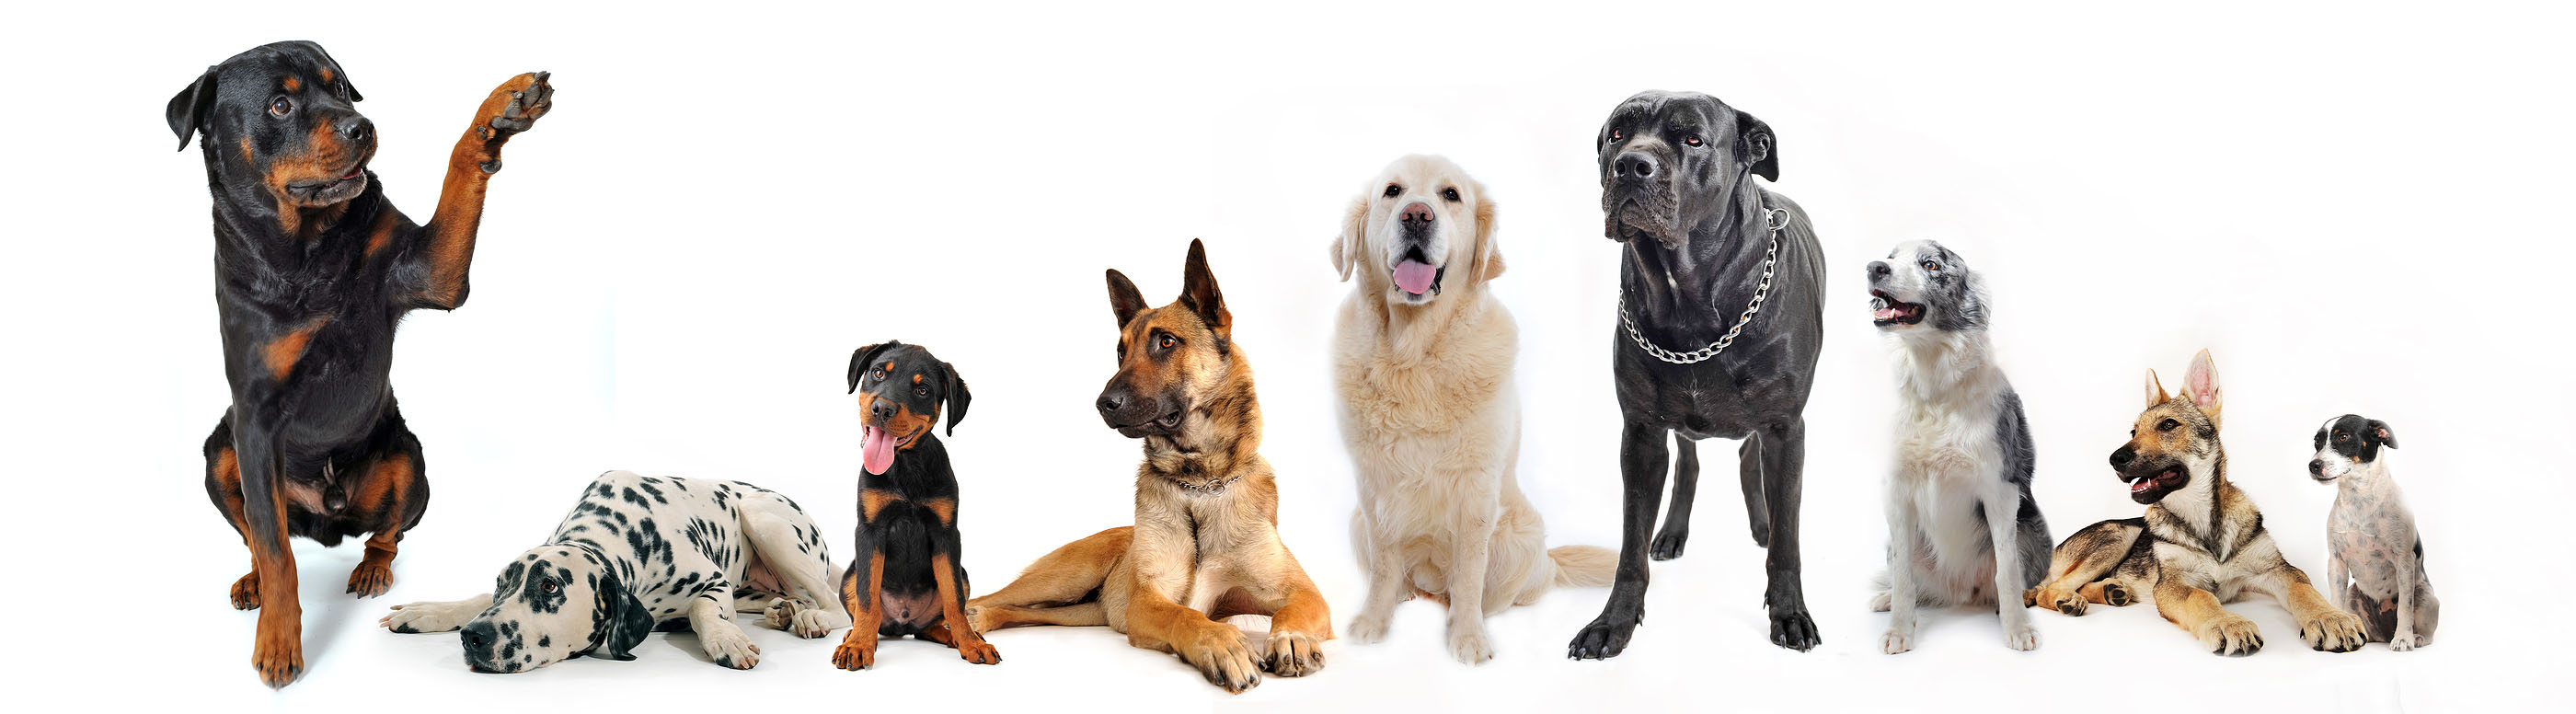 group-of-dogs1